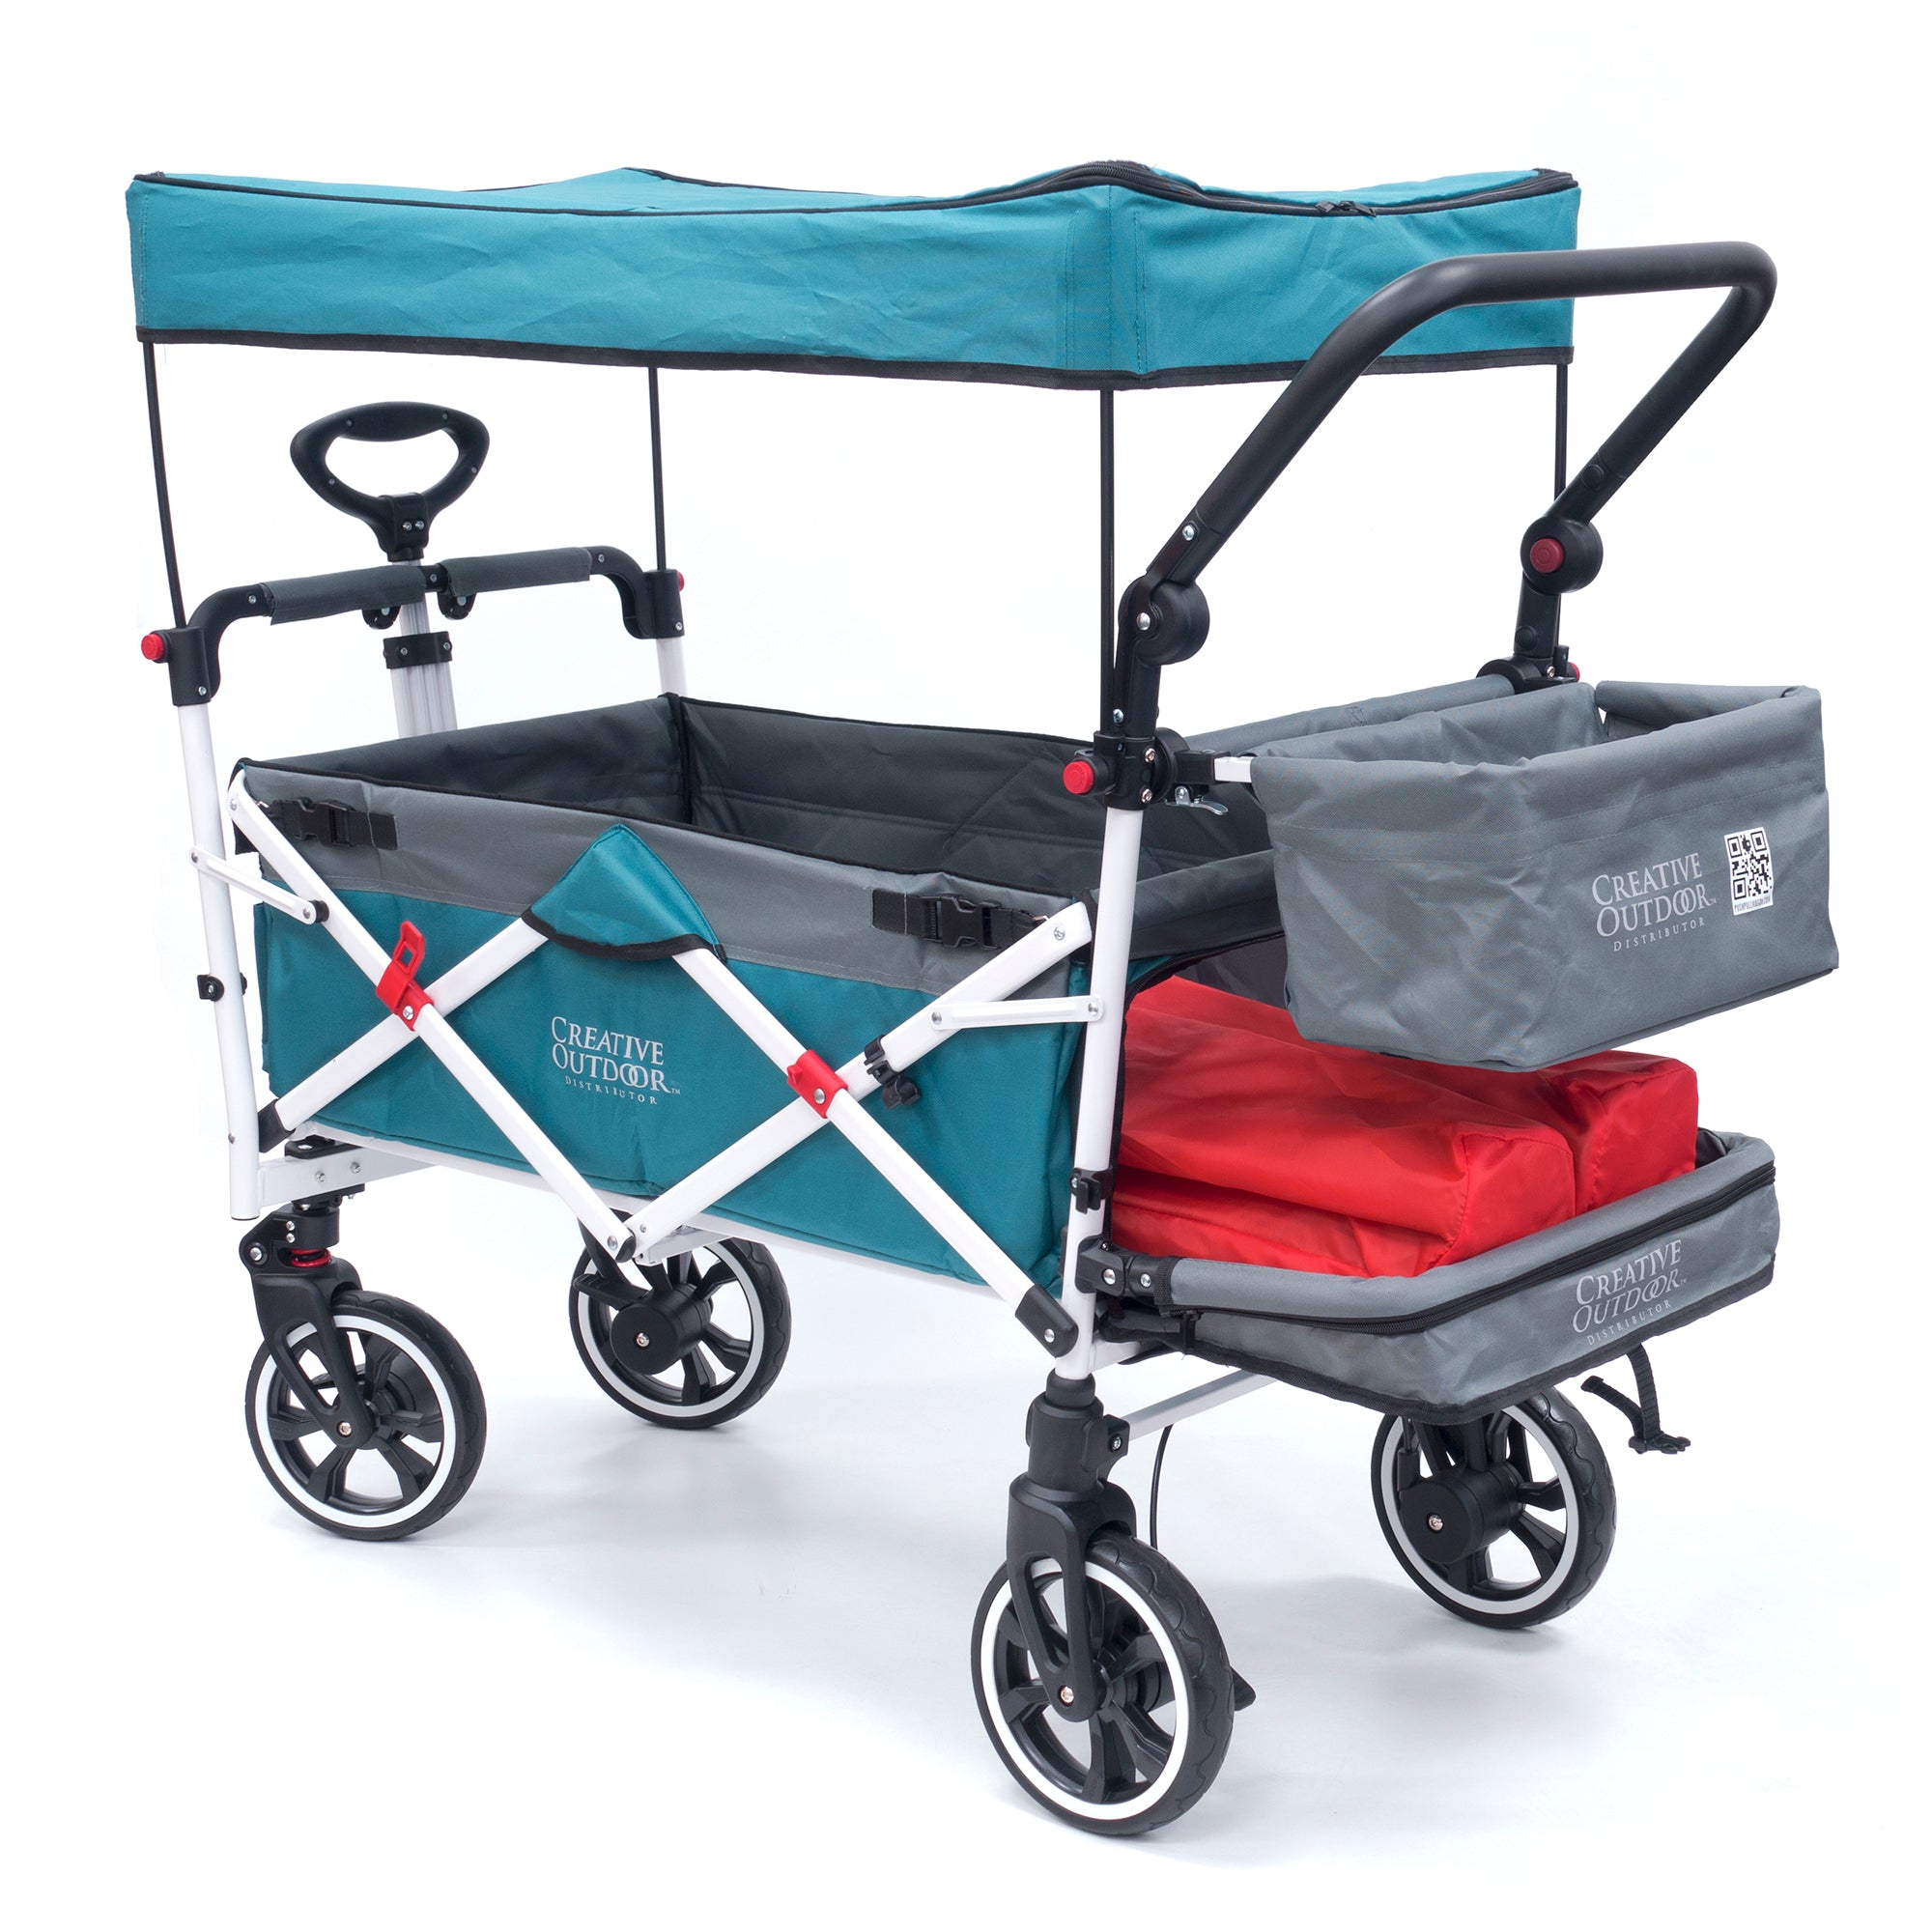 Push Pull Folding Stroller Wagon Titanium Series Teal